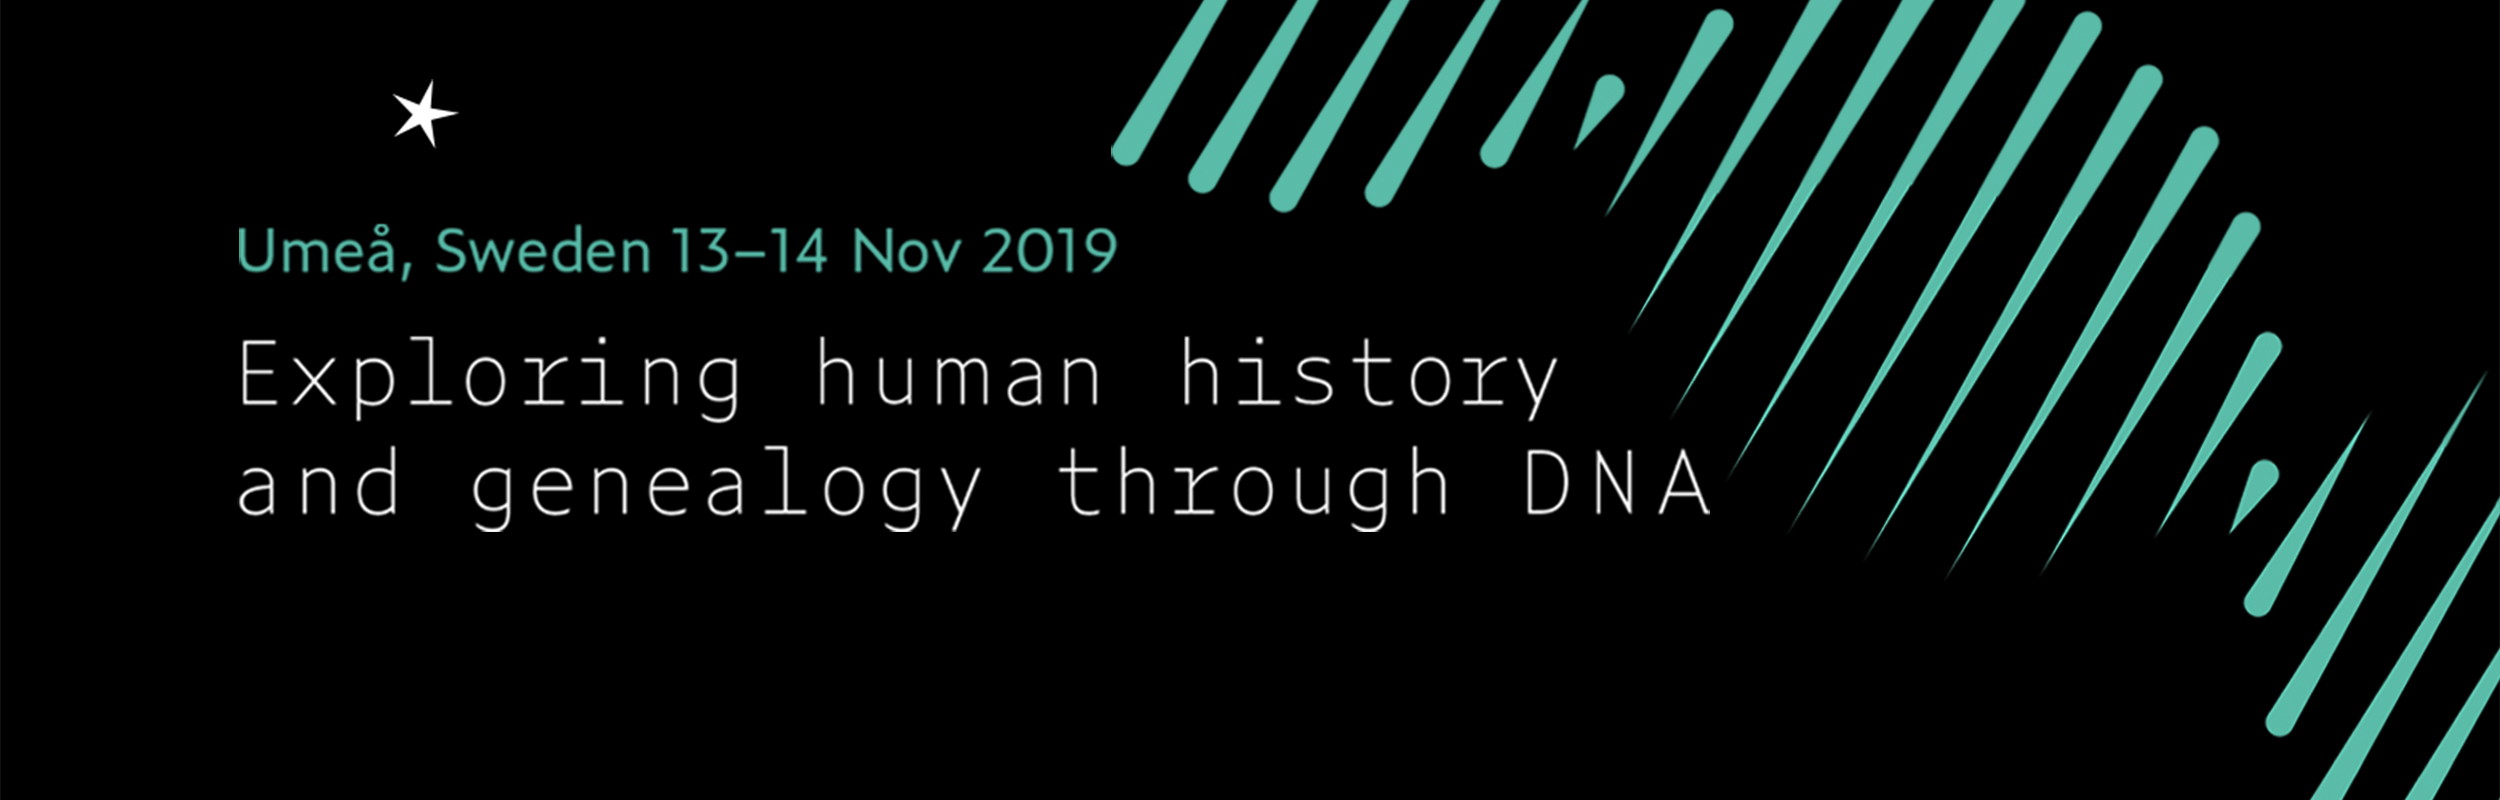 poster for conference on exploring human history and genealogy through DNA